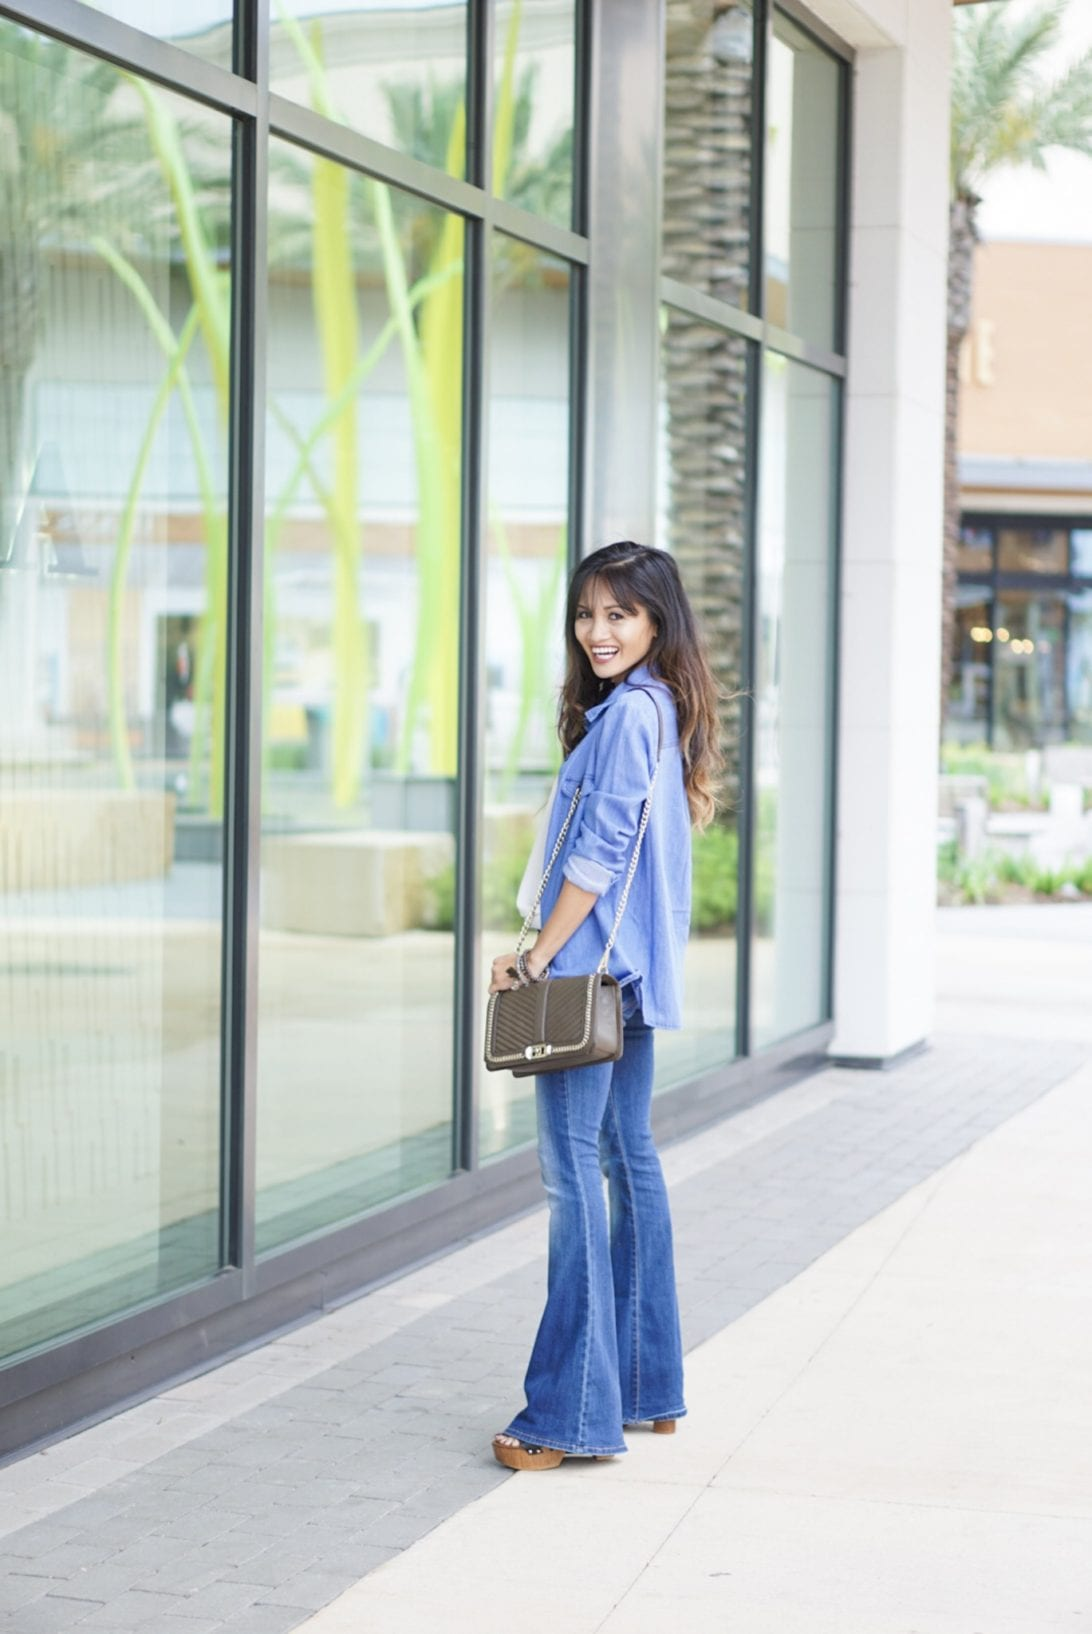 denim on denim, cross body bag, summer style